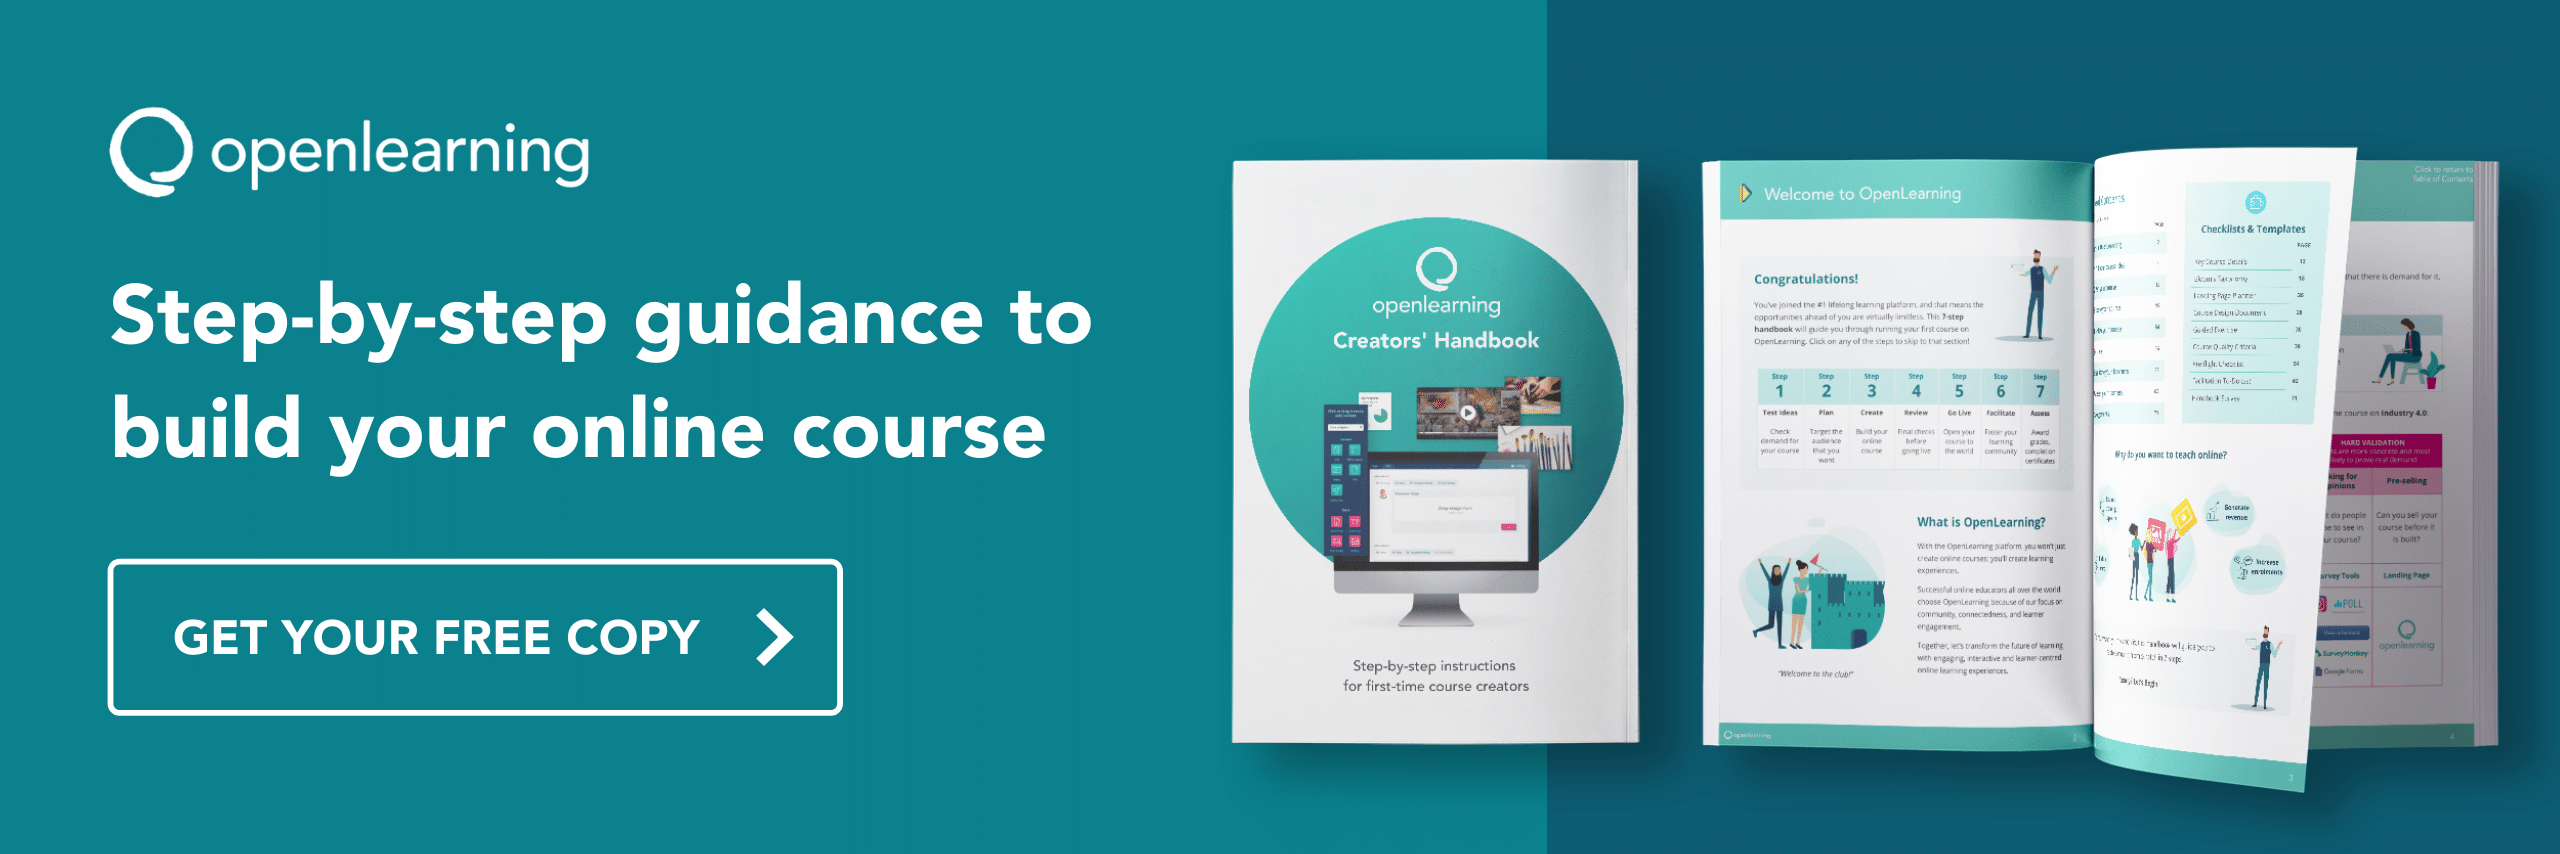 Step-by-step guidance to build your online course. Get your free copy of the OpenLearning Course Creators Handbook.